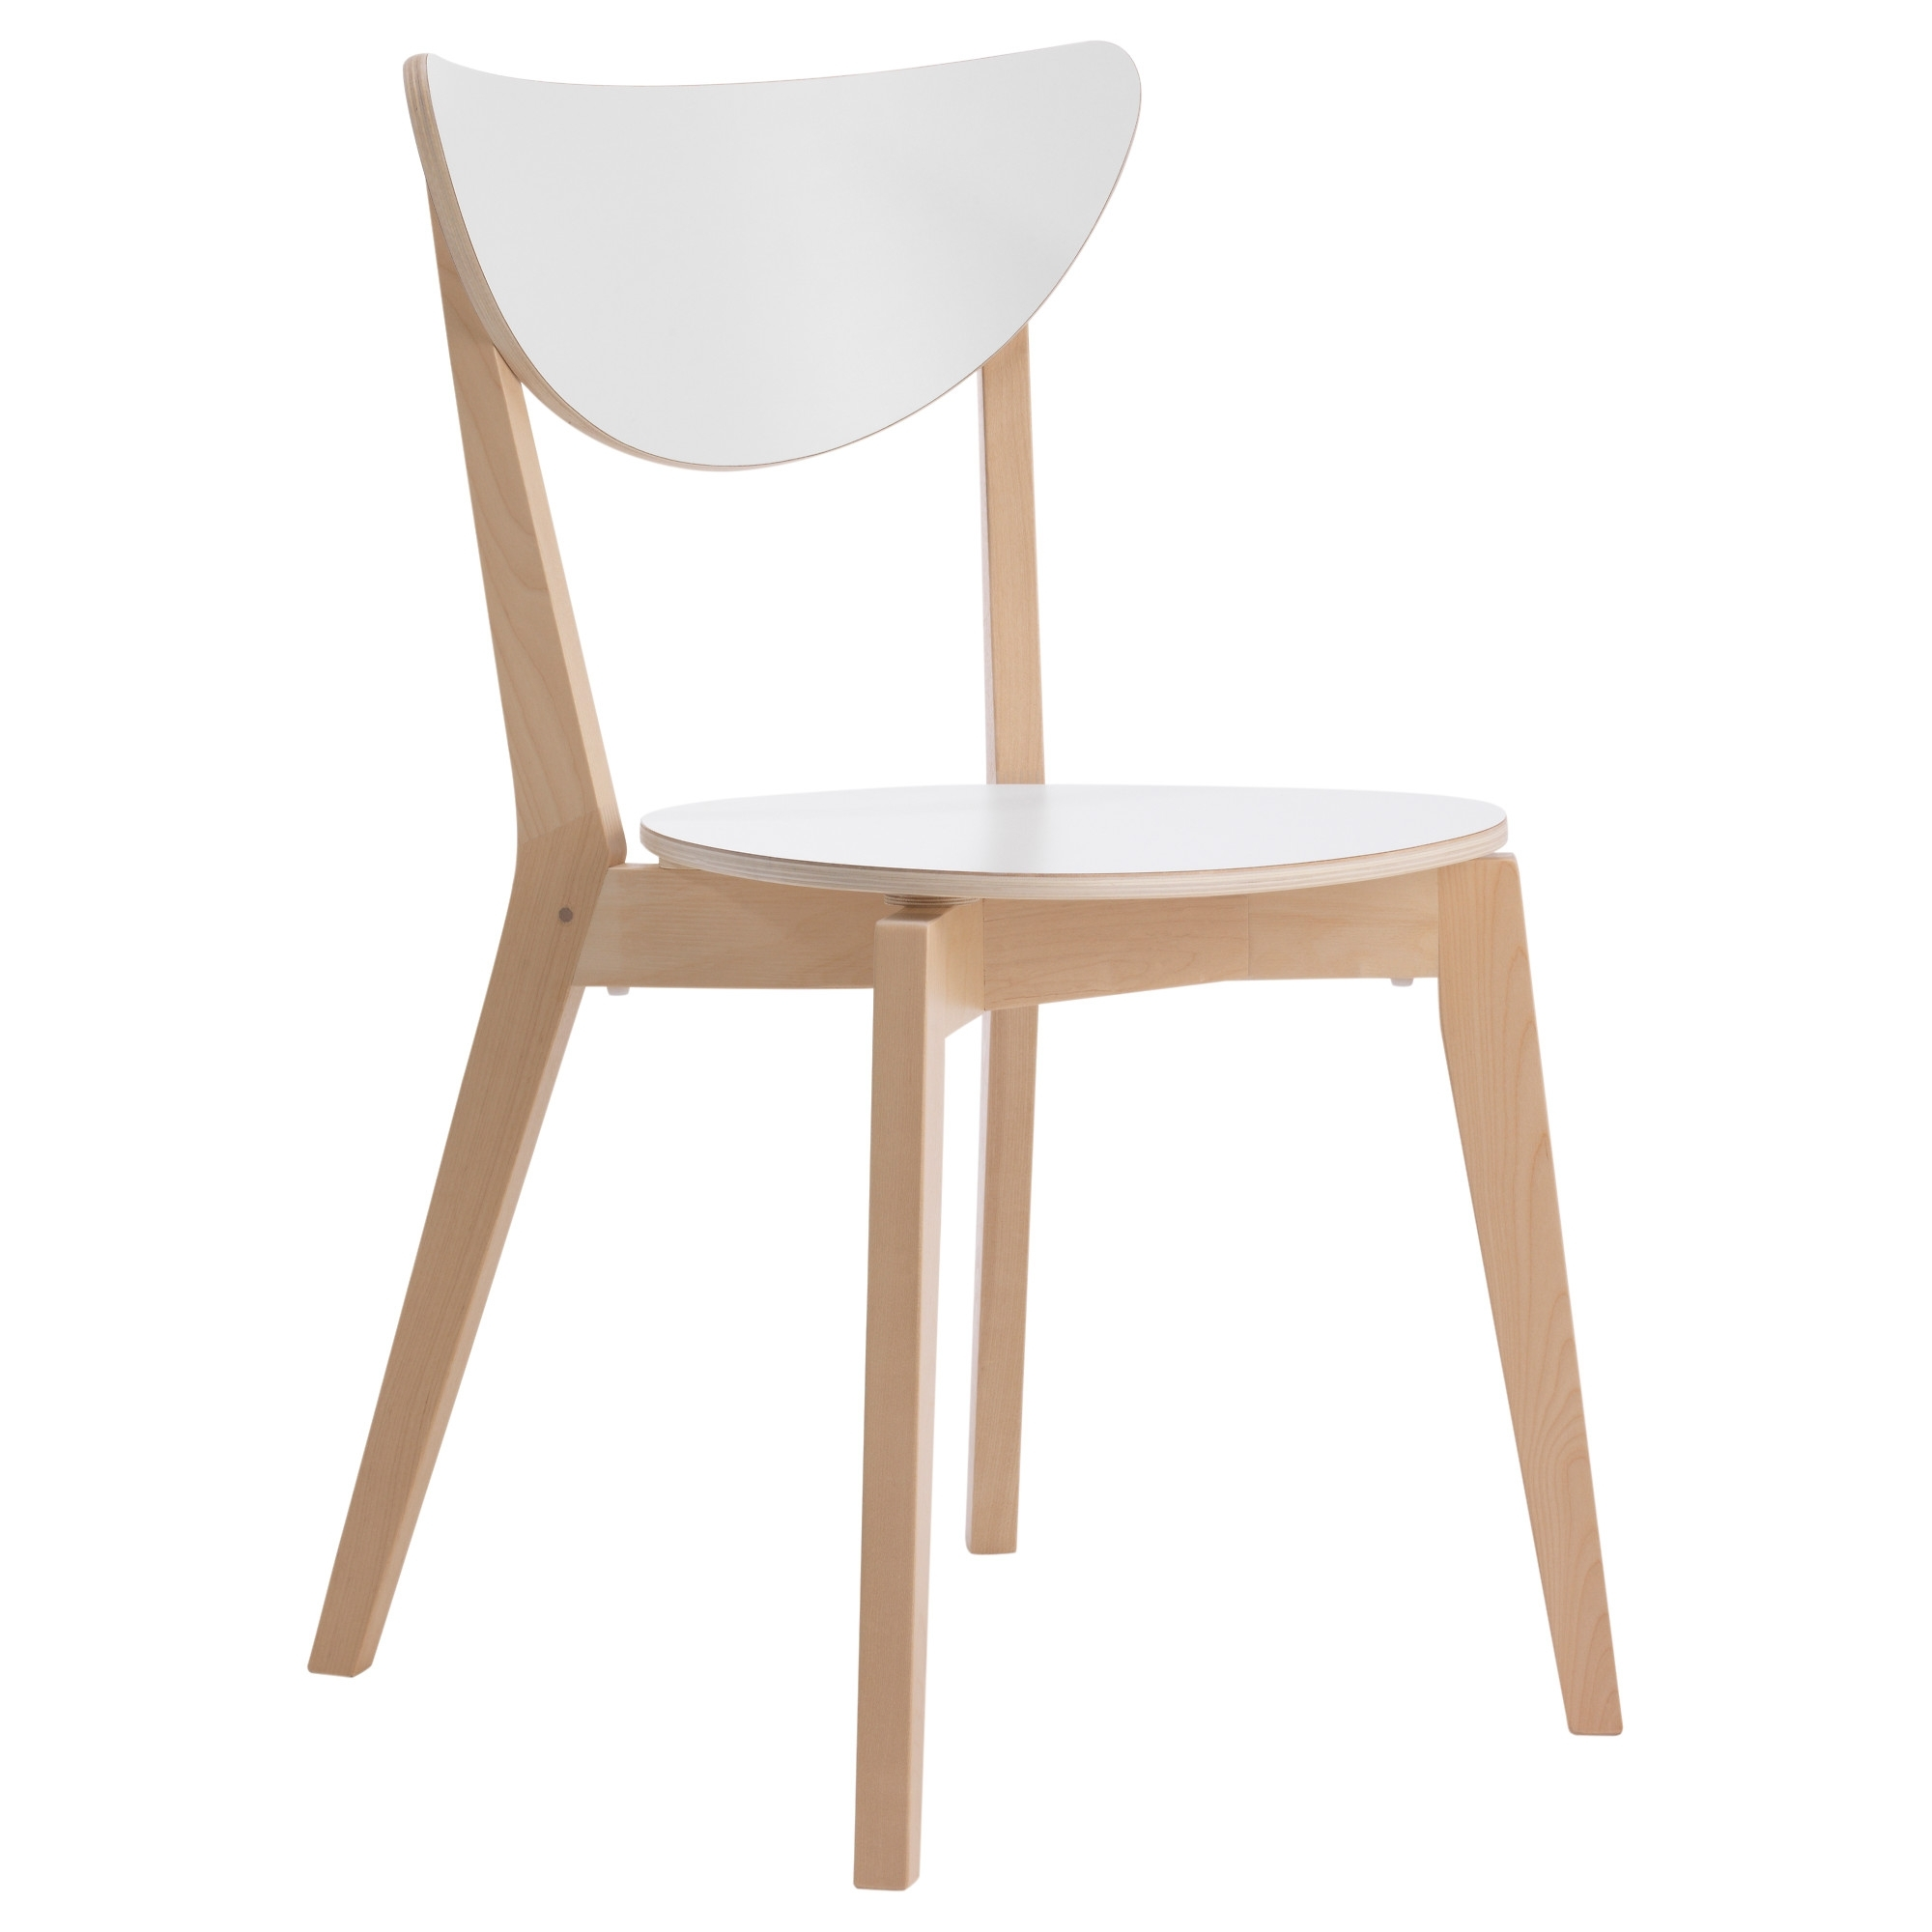 Ikea Chaises Intended For Most Recent Nordmyra Chaise – Ikea (Gallery 1 of 15)